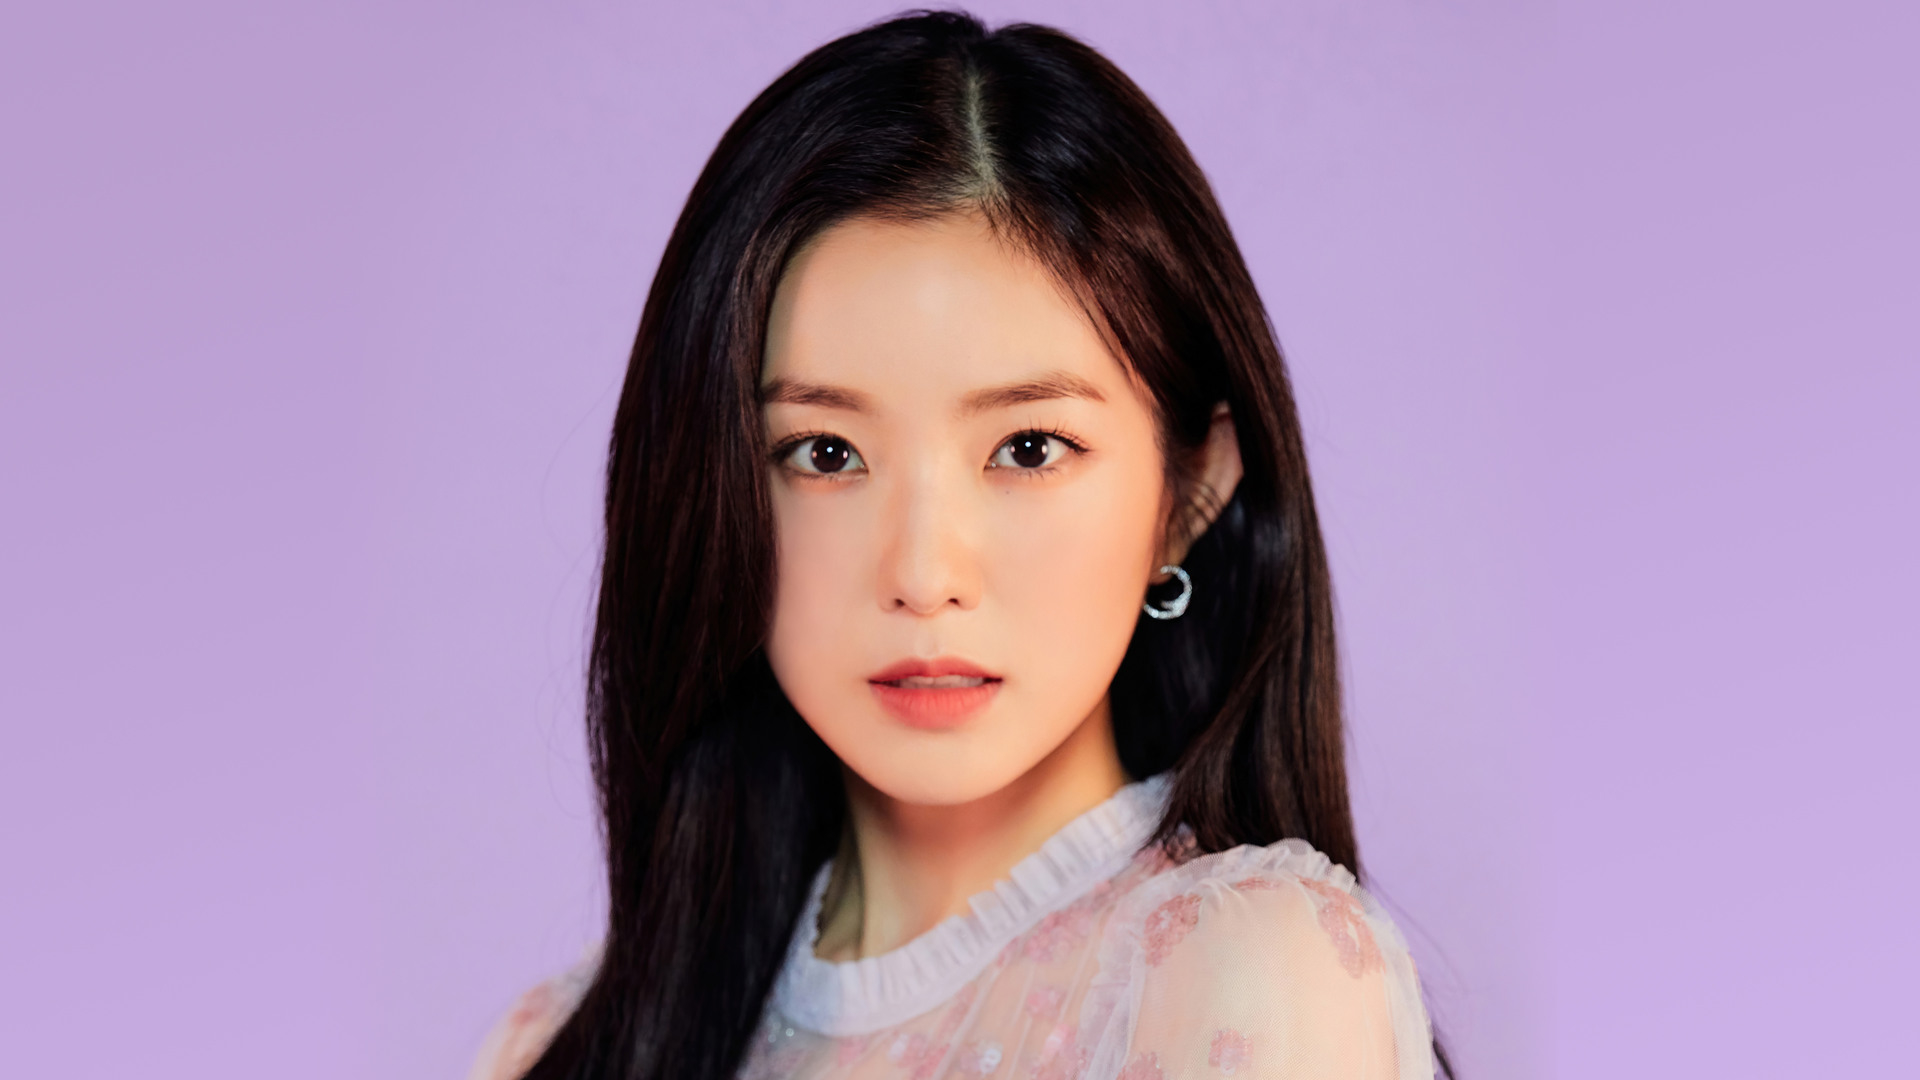 Irene Bae Joo Hyun Red Velvet Face Wallpaper Hd Music 4k Wallpapers Images Photos And Background